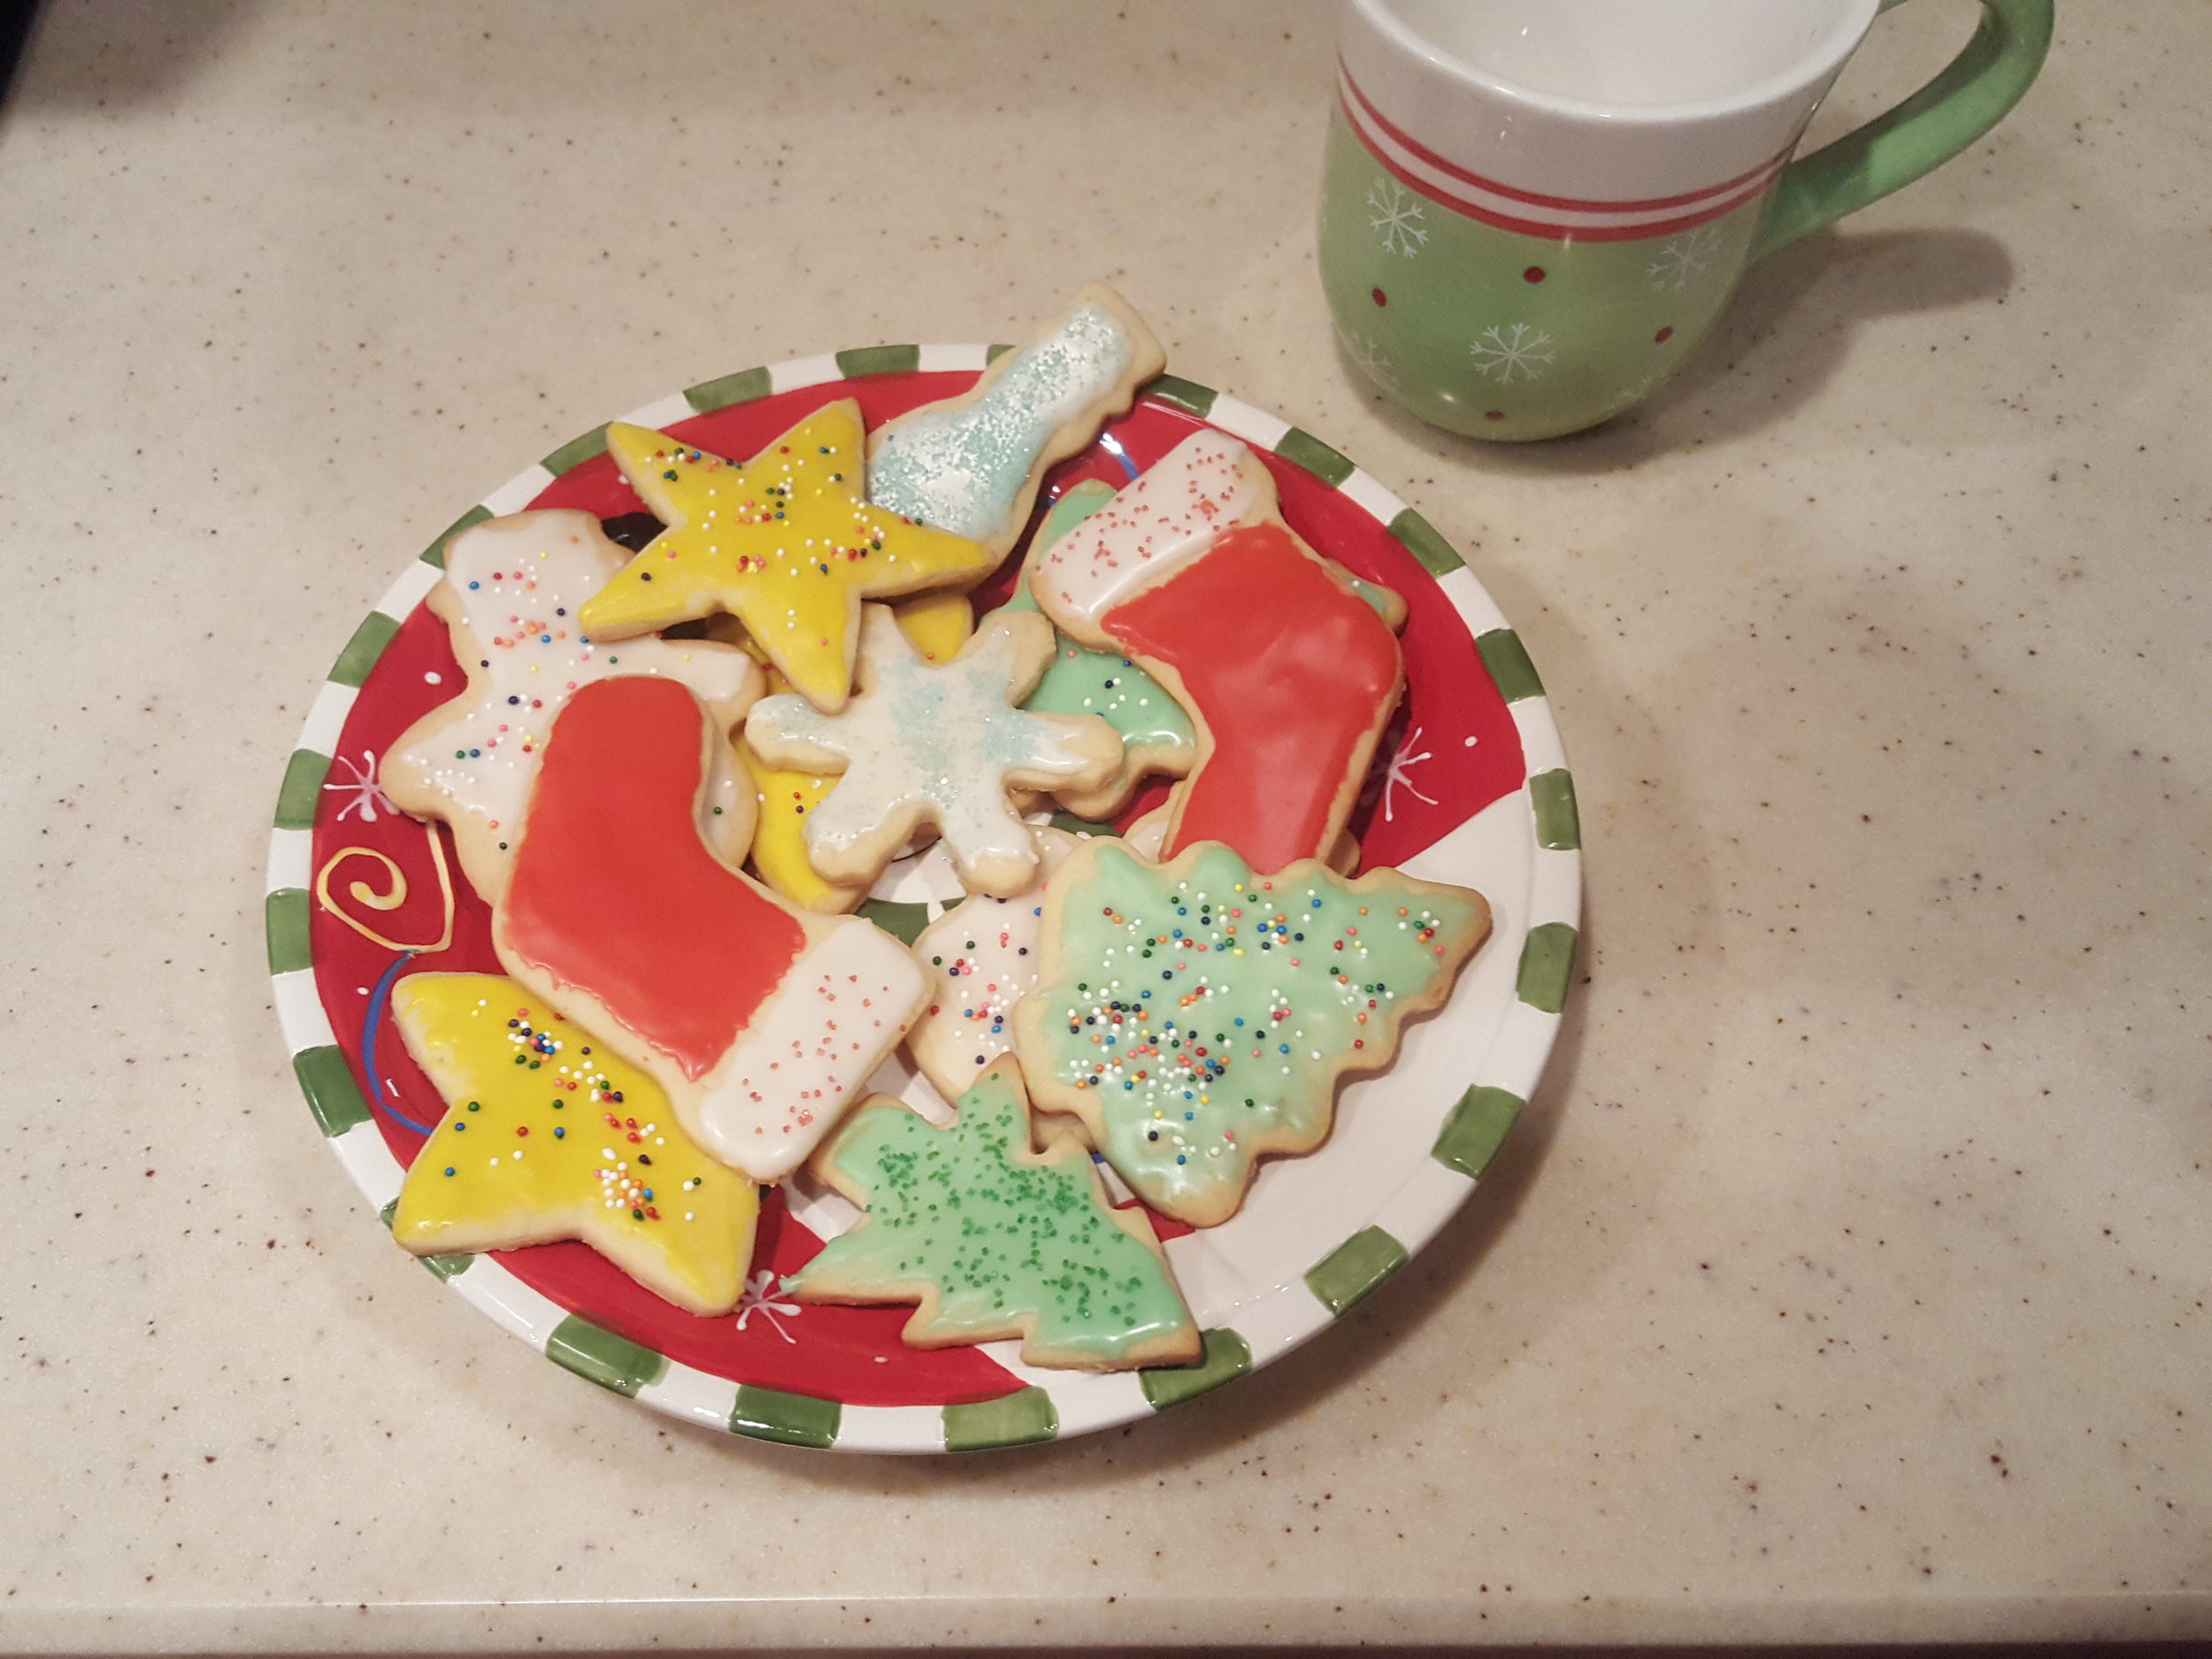 See more photos of Toni making her family's traditional cookie recipe on  the   Holly Lane   page